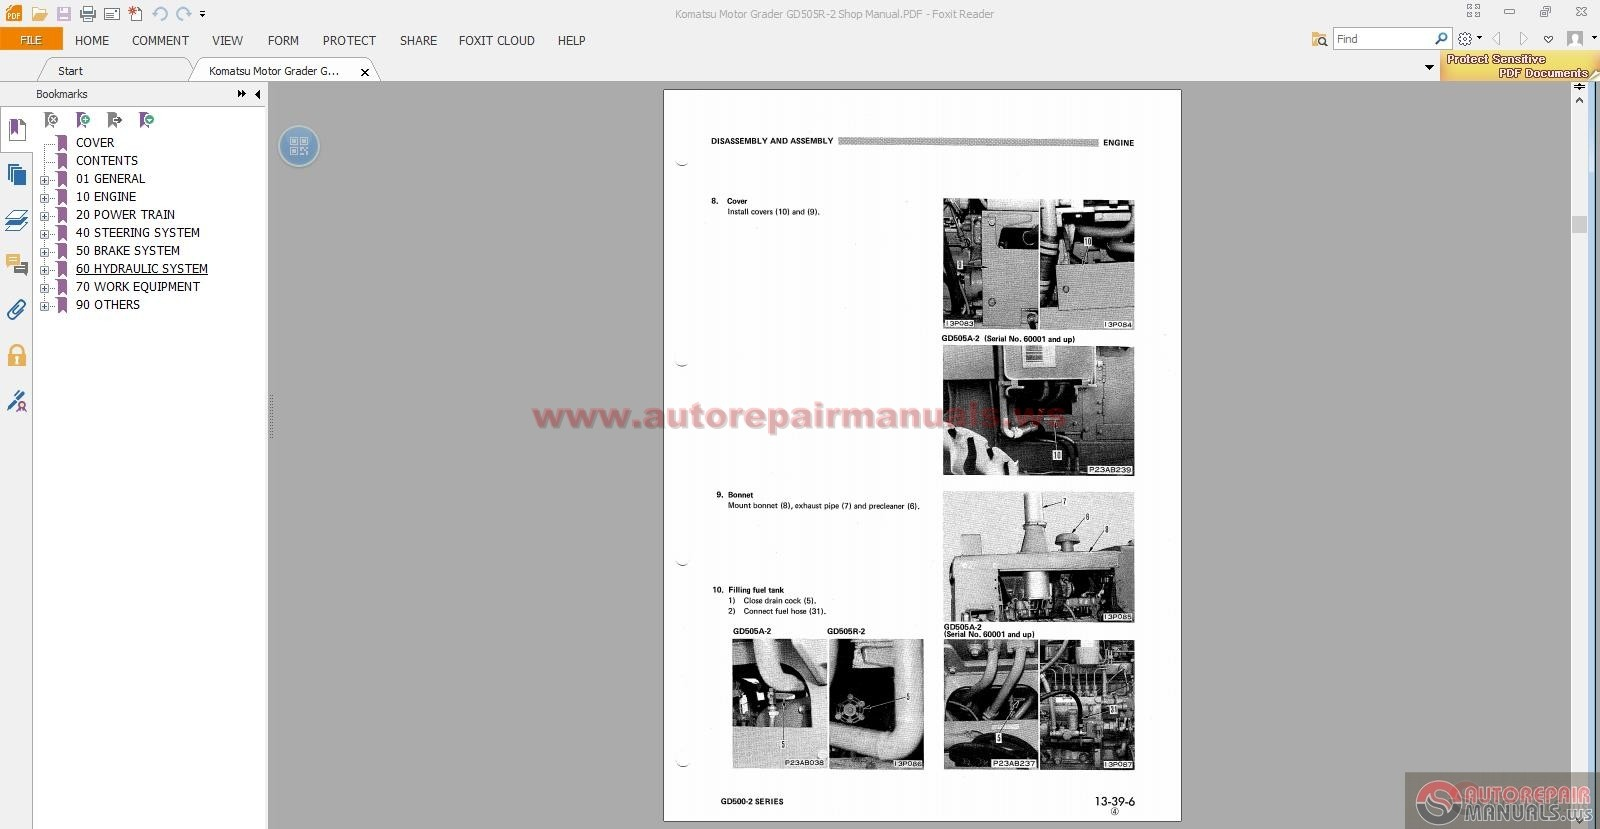 komatsu motorgraders workshop manuals auto repair manual. Black Bedroom Furniture Sets. Home Design Ideas